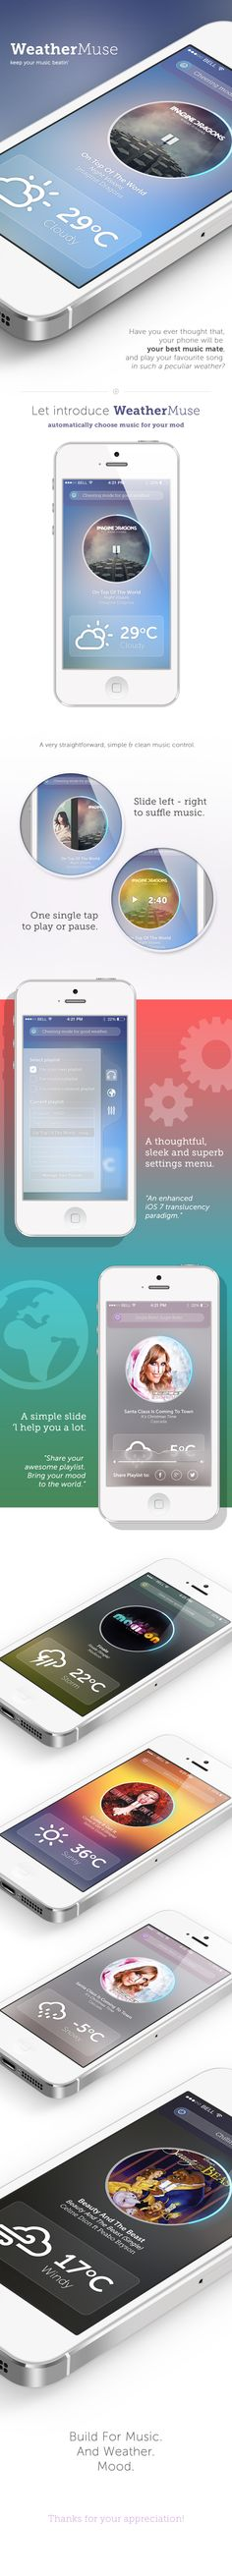 WeatherMuse by Zuyet Awarmatik, via Behance